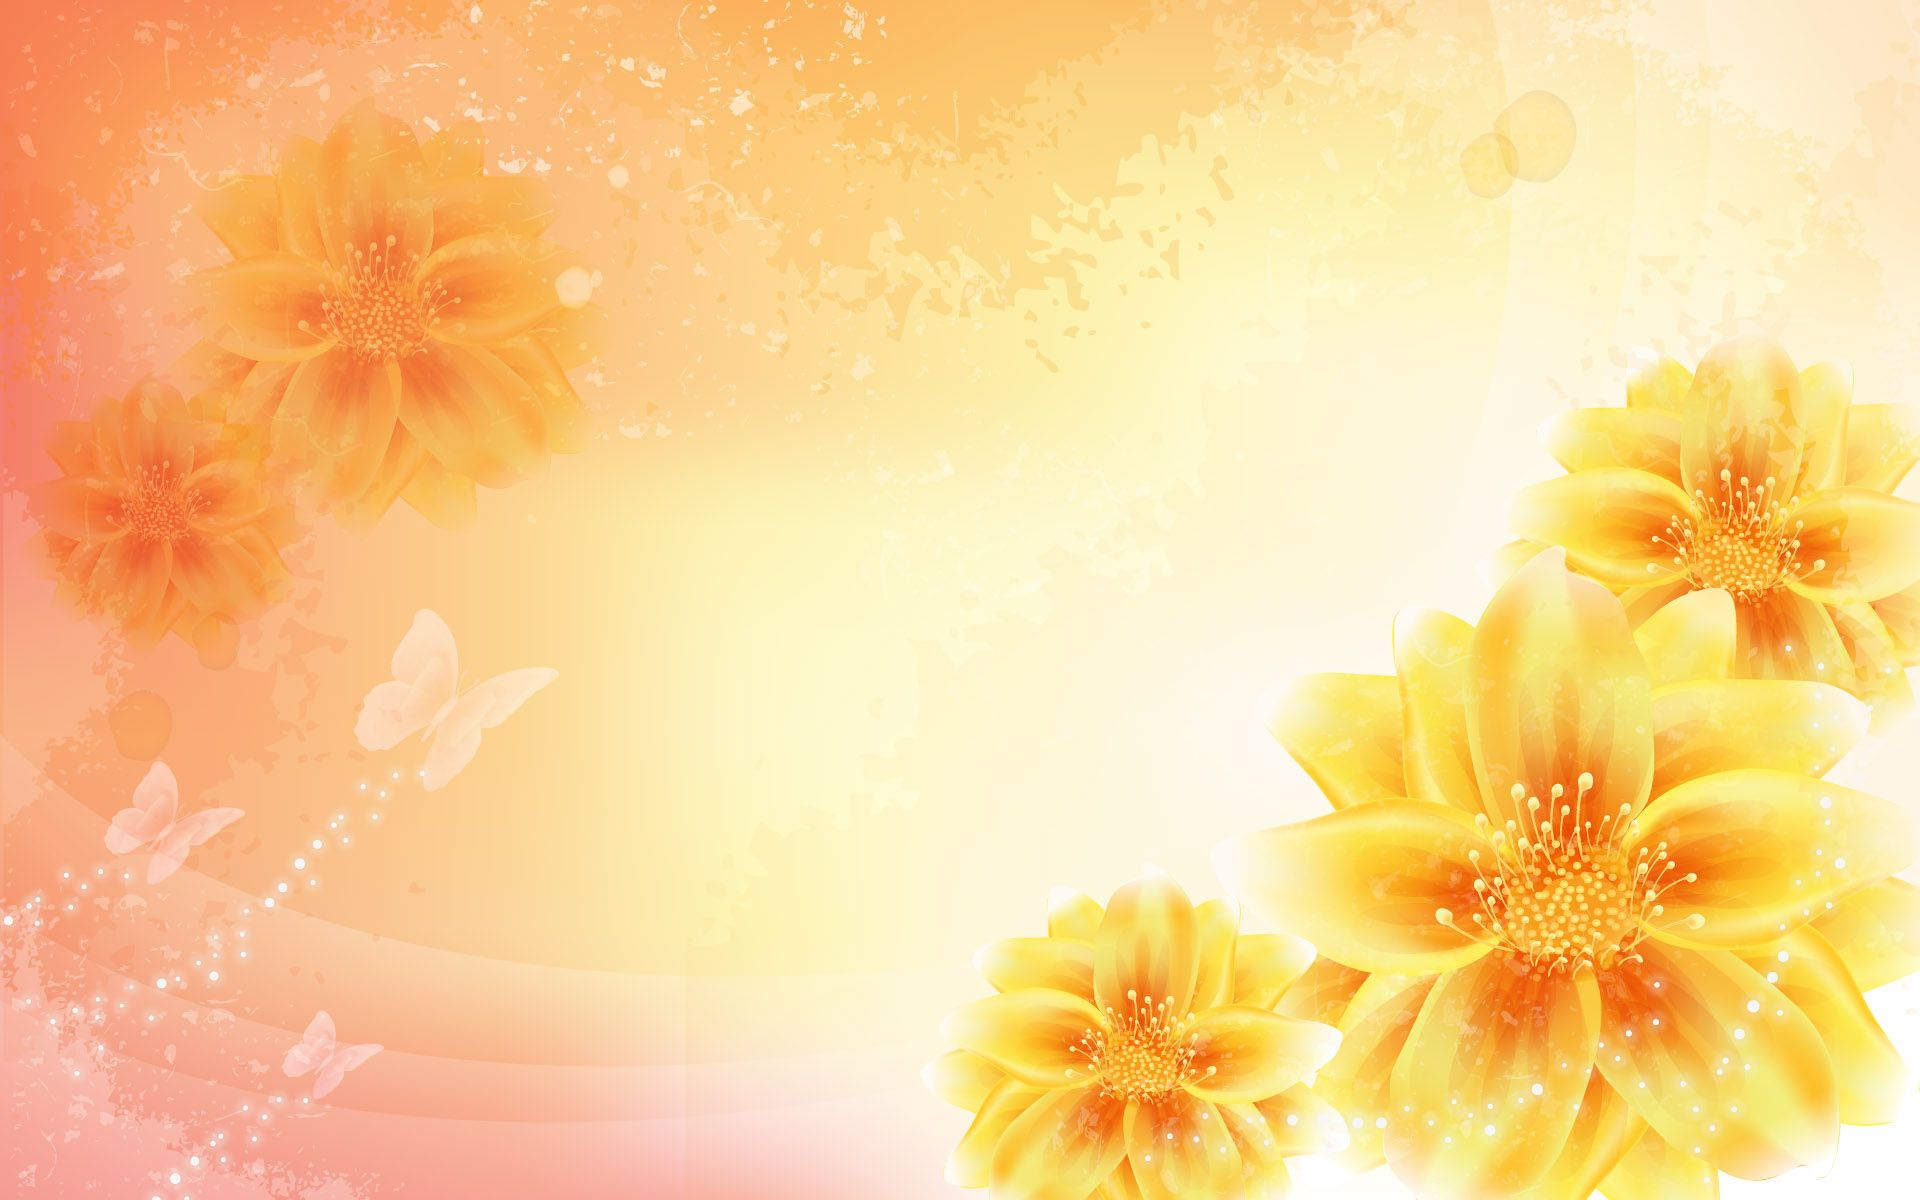 yellow flowers wallpapers pack - photo #30